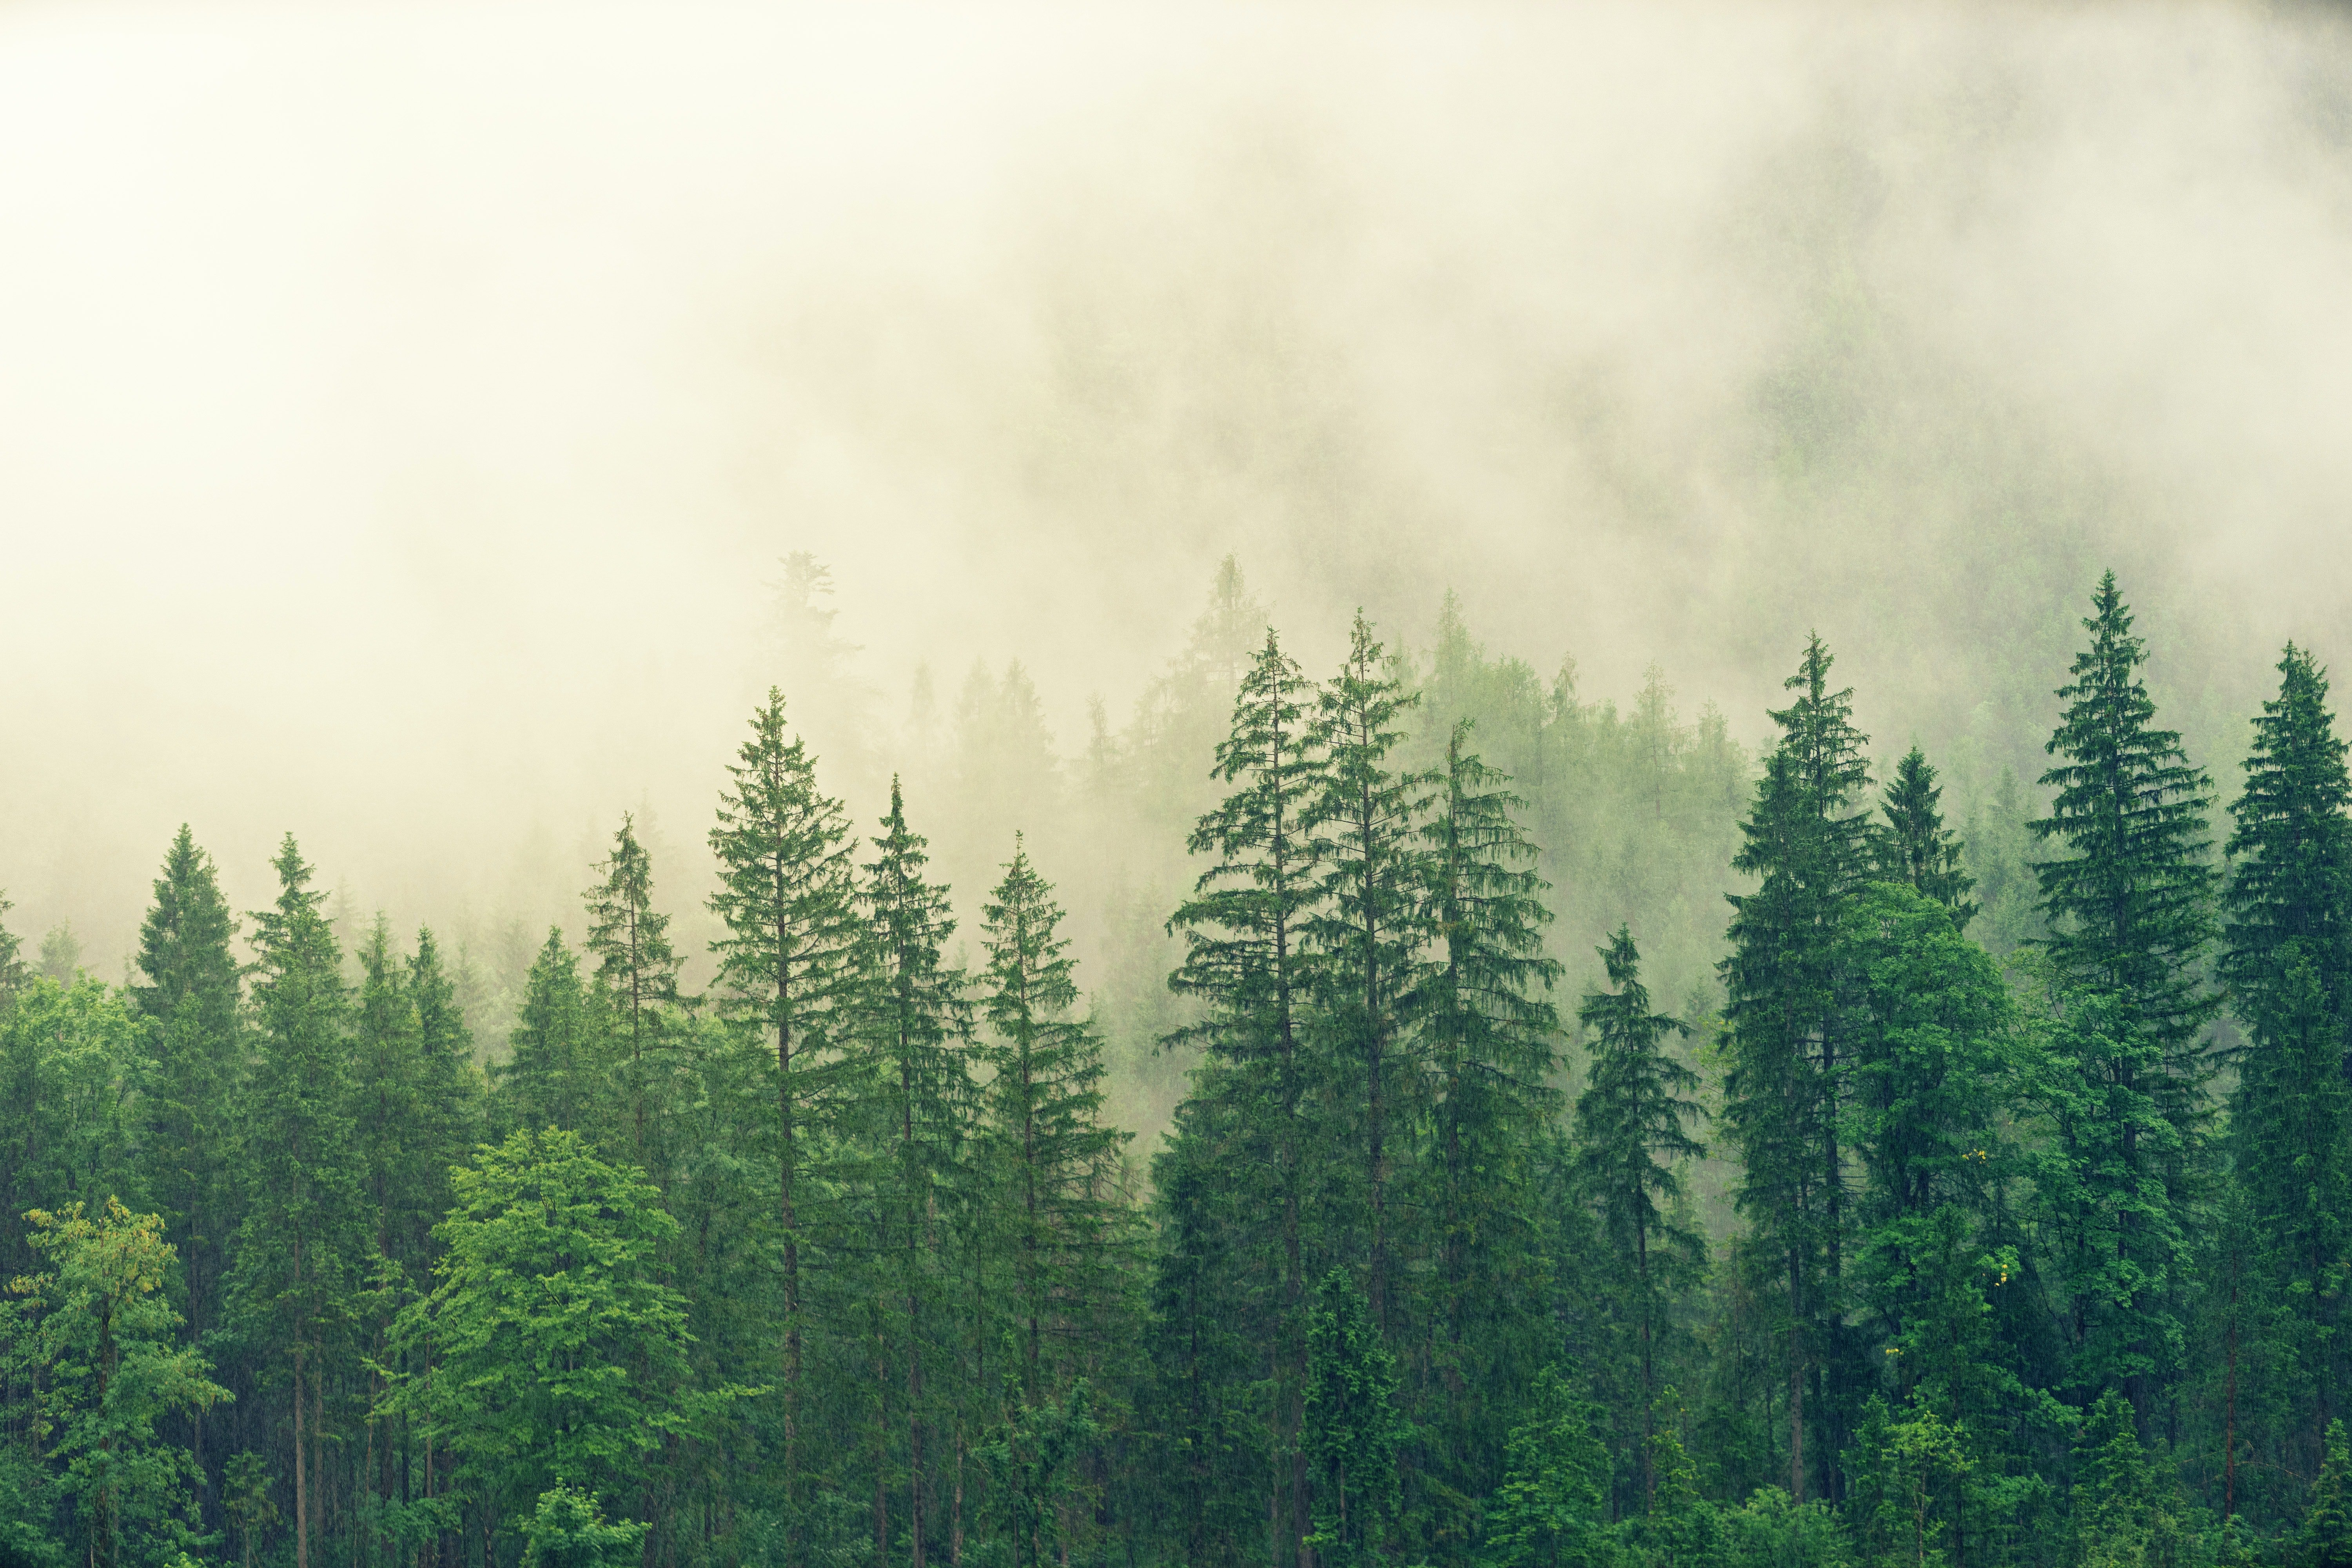 Pictured - A forest covered in white fog   Source: Pexels